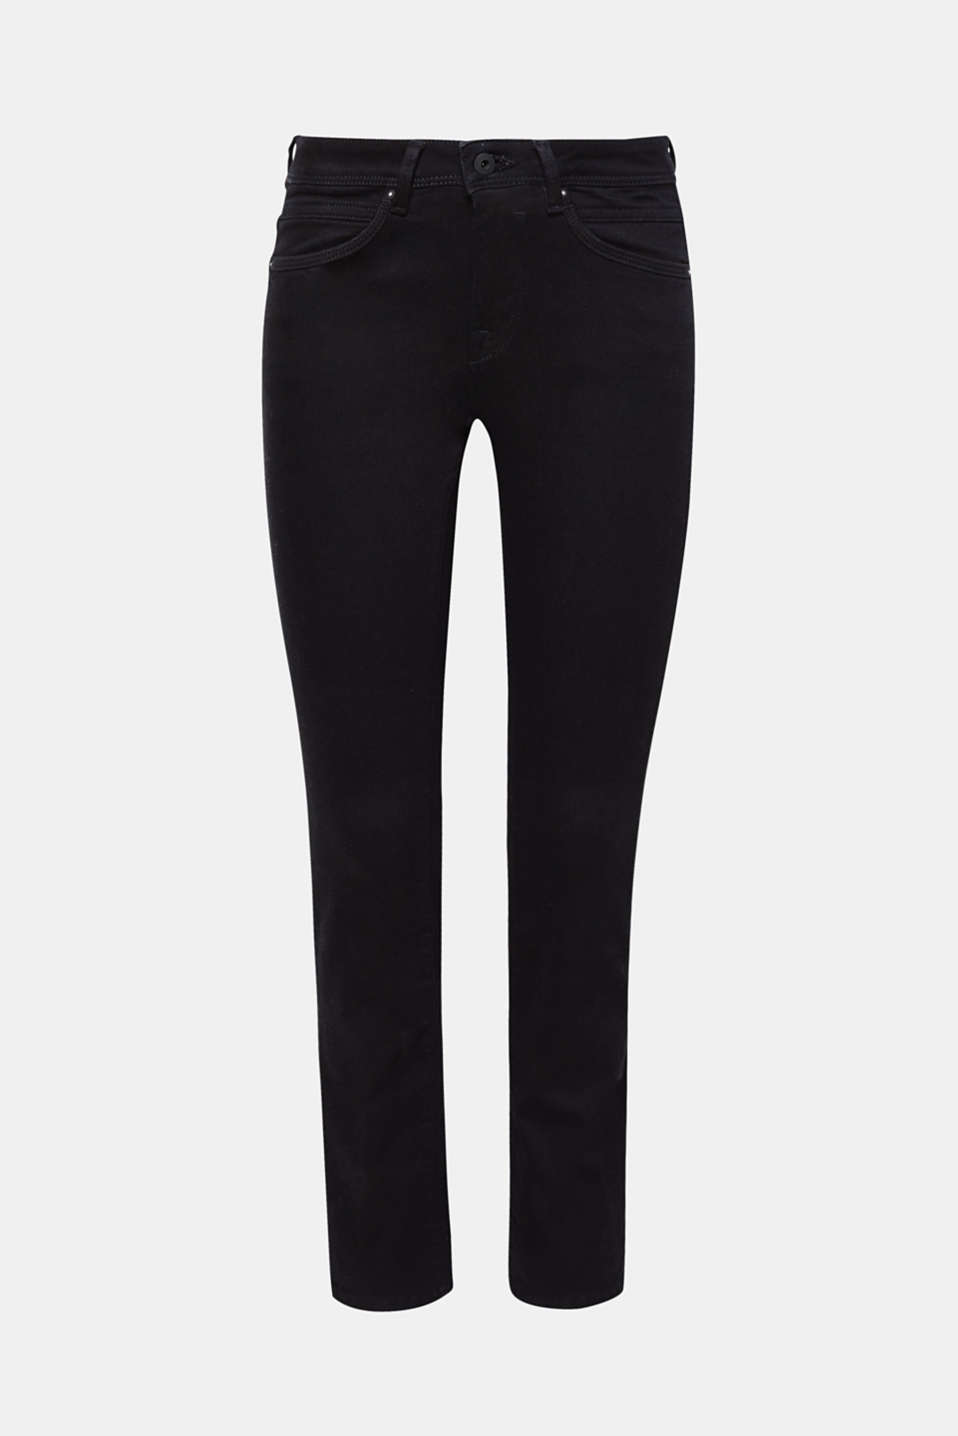 Your top basic: These jet black stretch jeans with a straight leg and stretch for comfort can be combined to create a wide range of outfits!